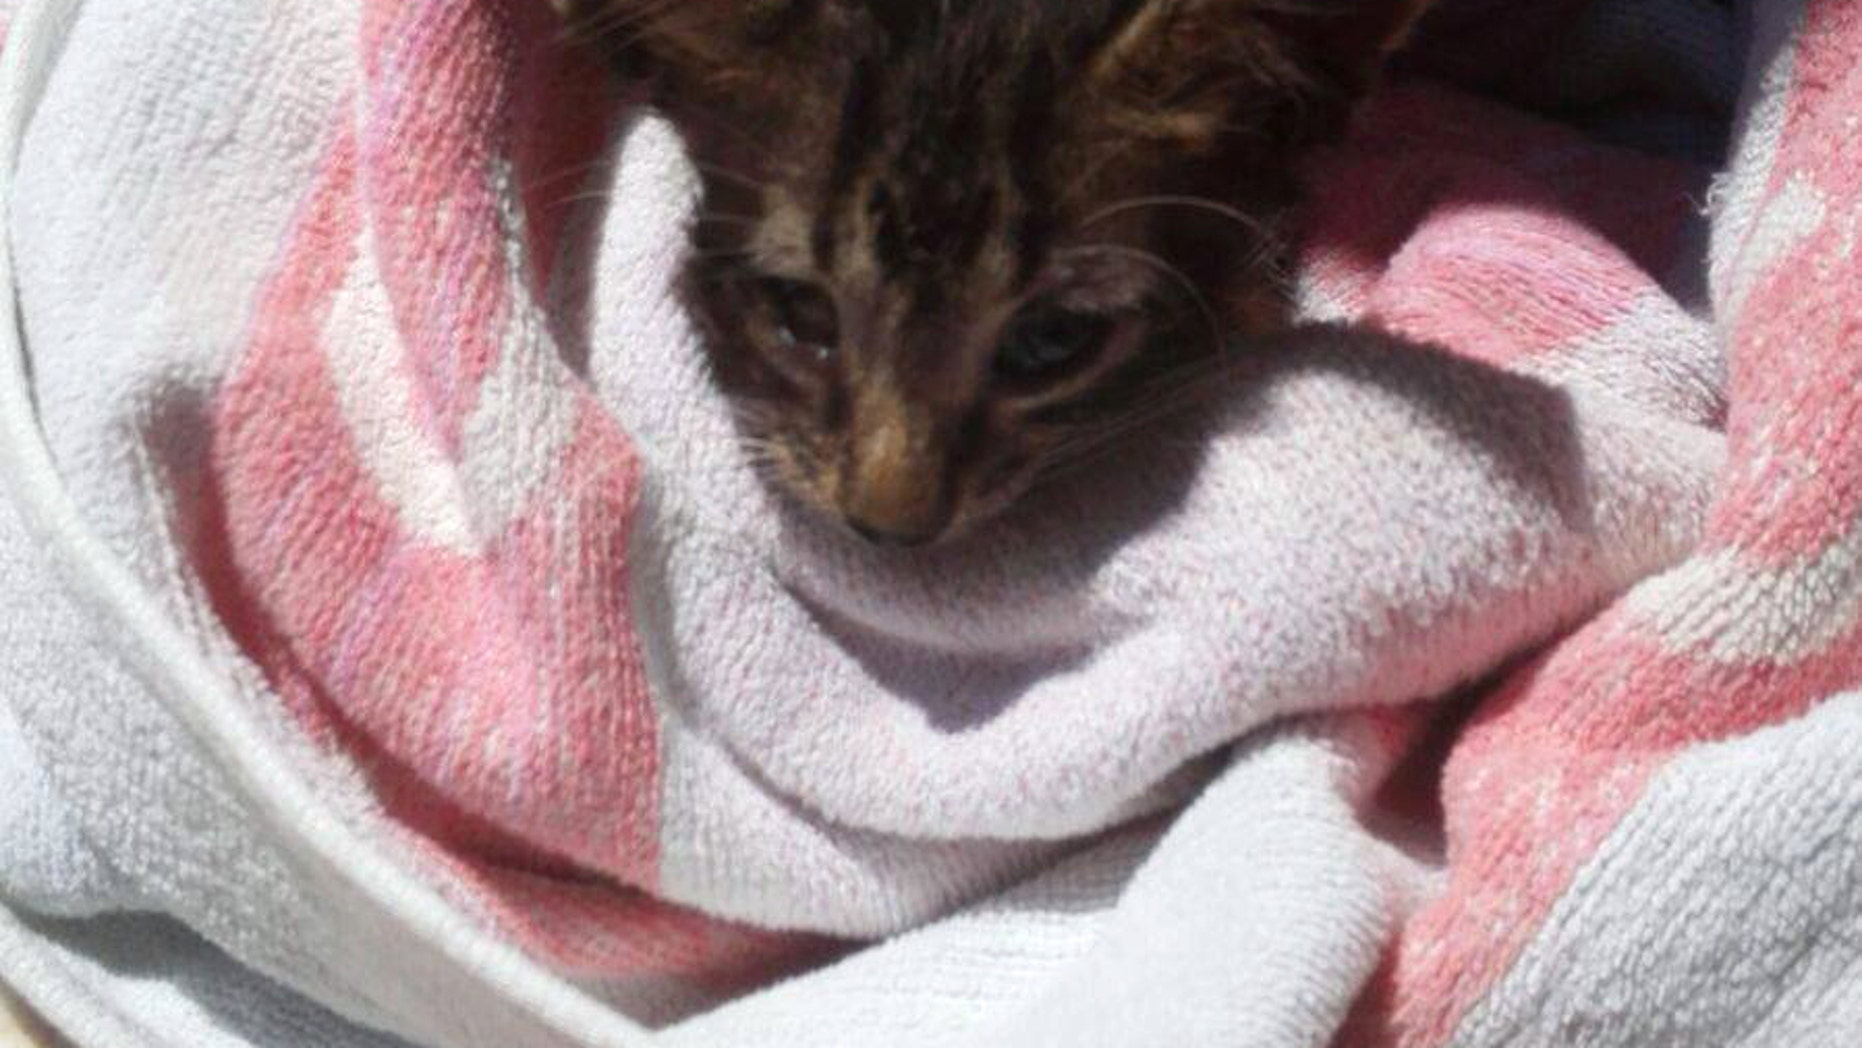 A kitten is wrapped in a towel after being rescued by the Italian Coast Guard.